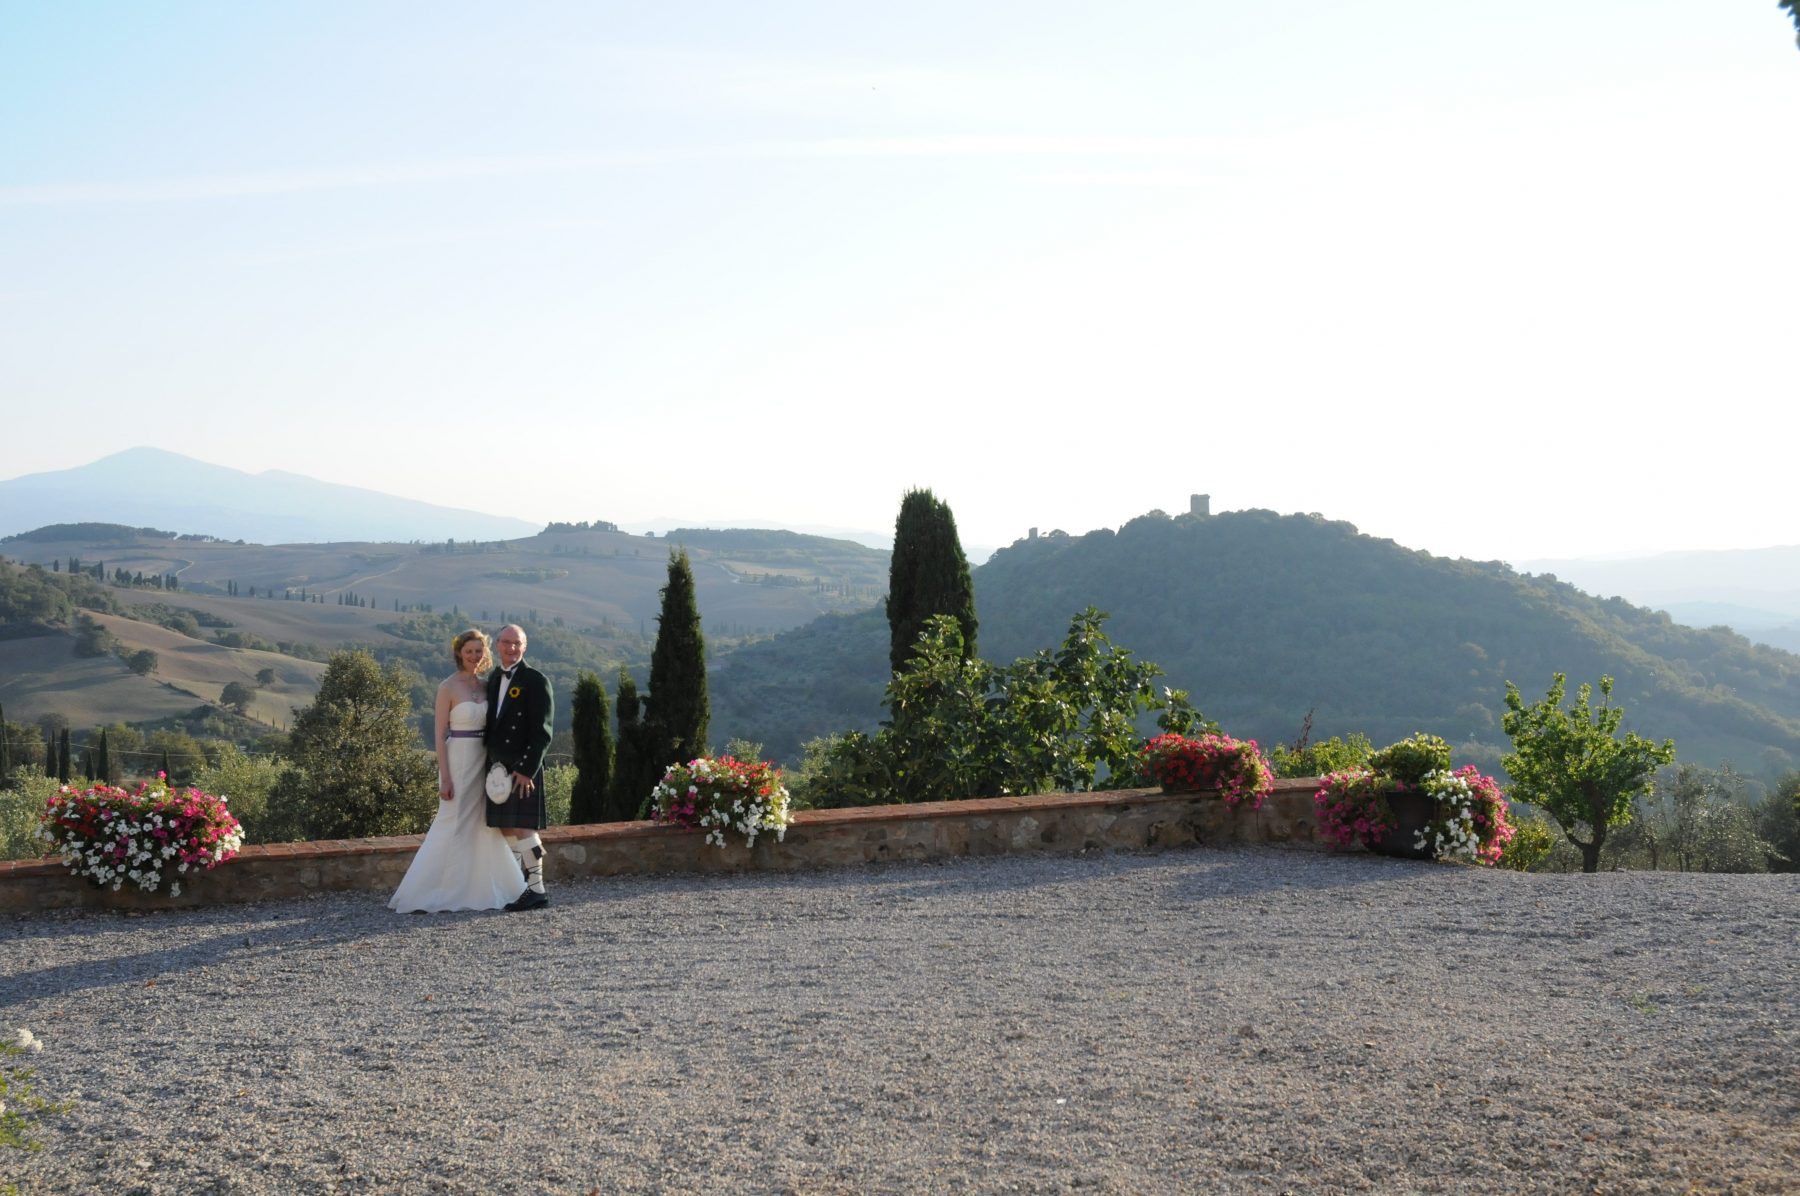 Love on the vine - luxury vineyard weddings abroad | Ultimate Wedding Magazine